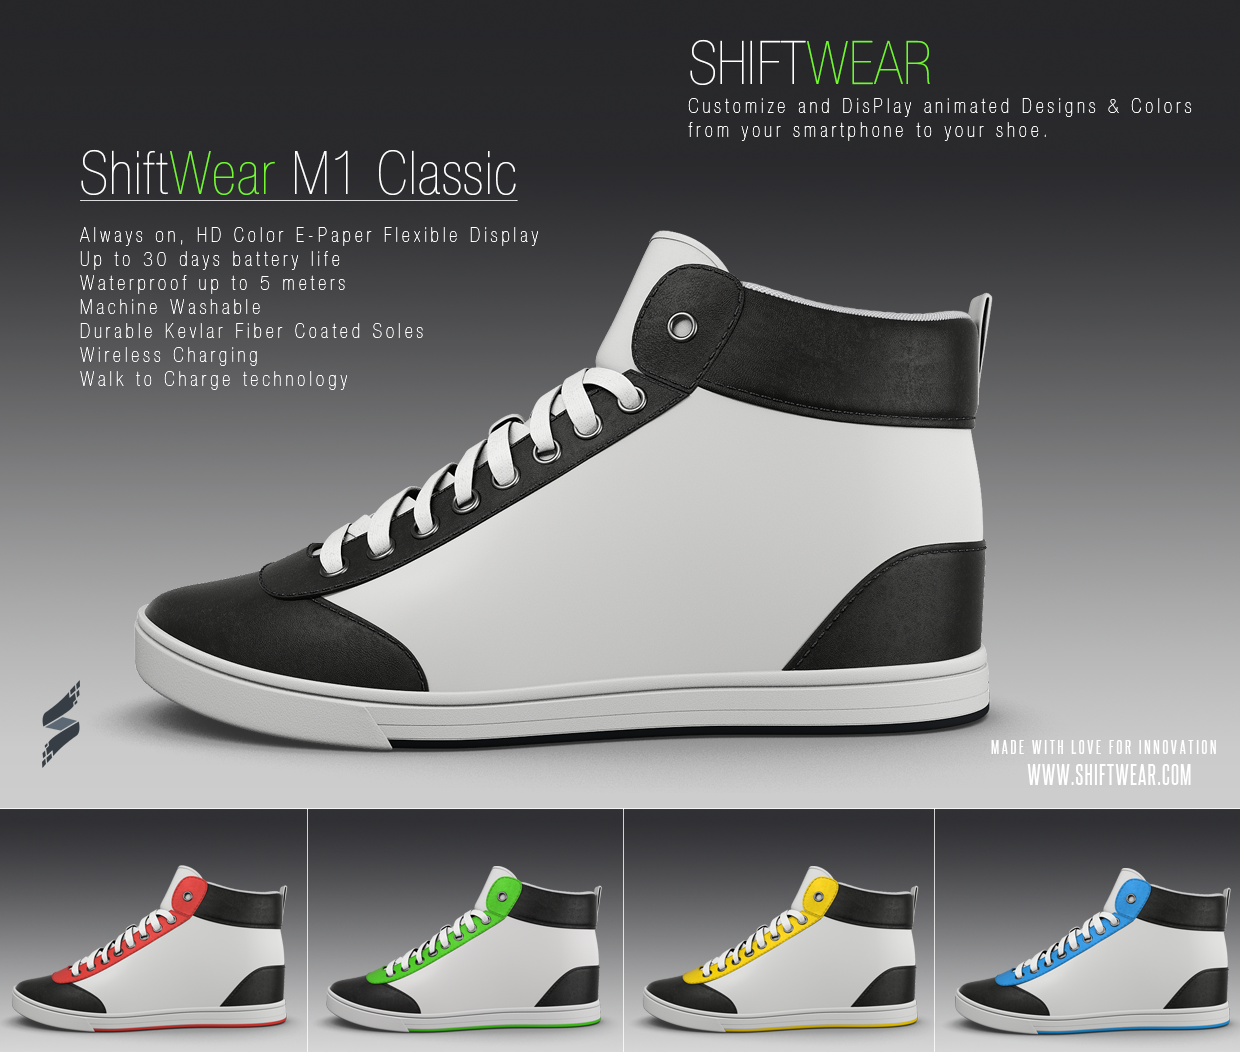 Shiftwear Lets You Change The Display on Your Sneakers with Your phone